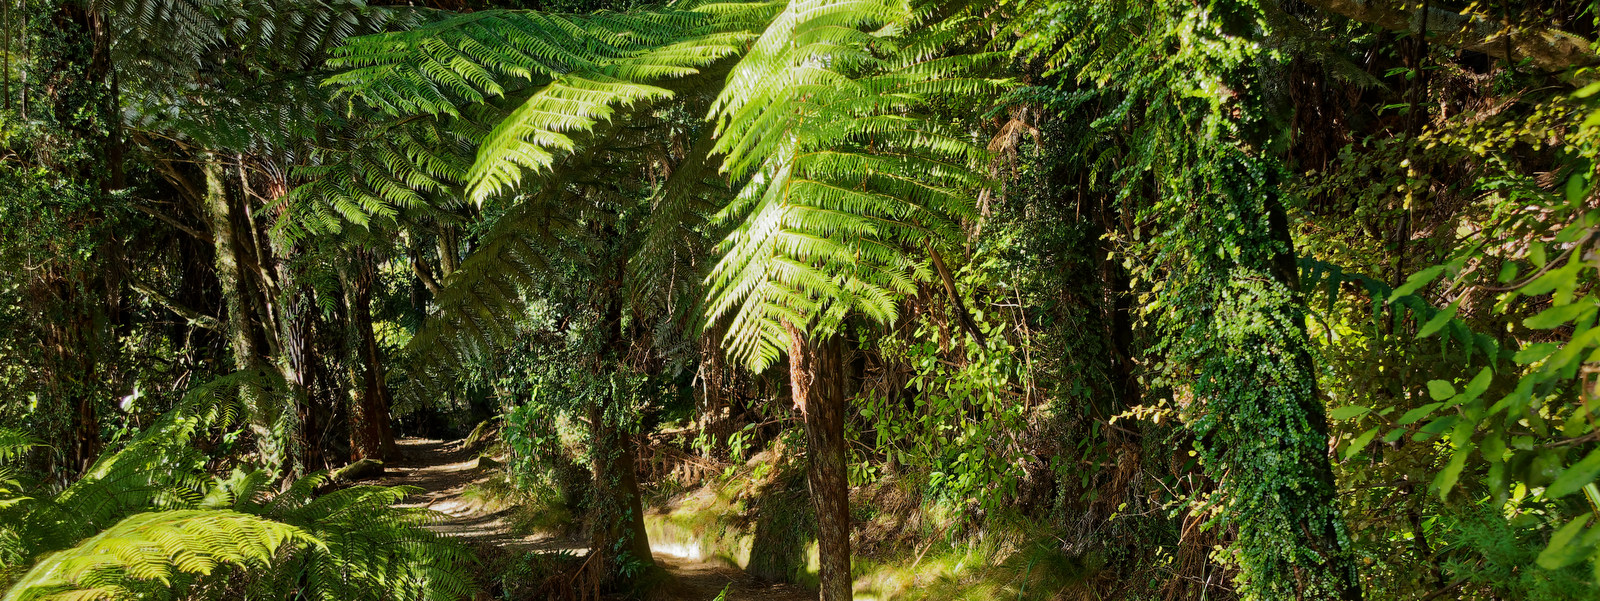 Admire the flora and fauna on the Abel Tasman Coastal Track, one of New Zealand's Great Walks.